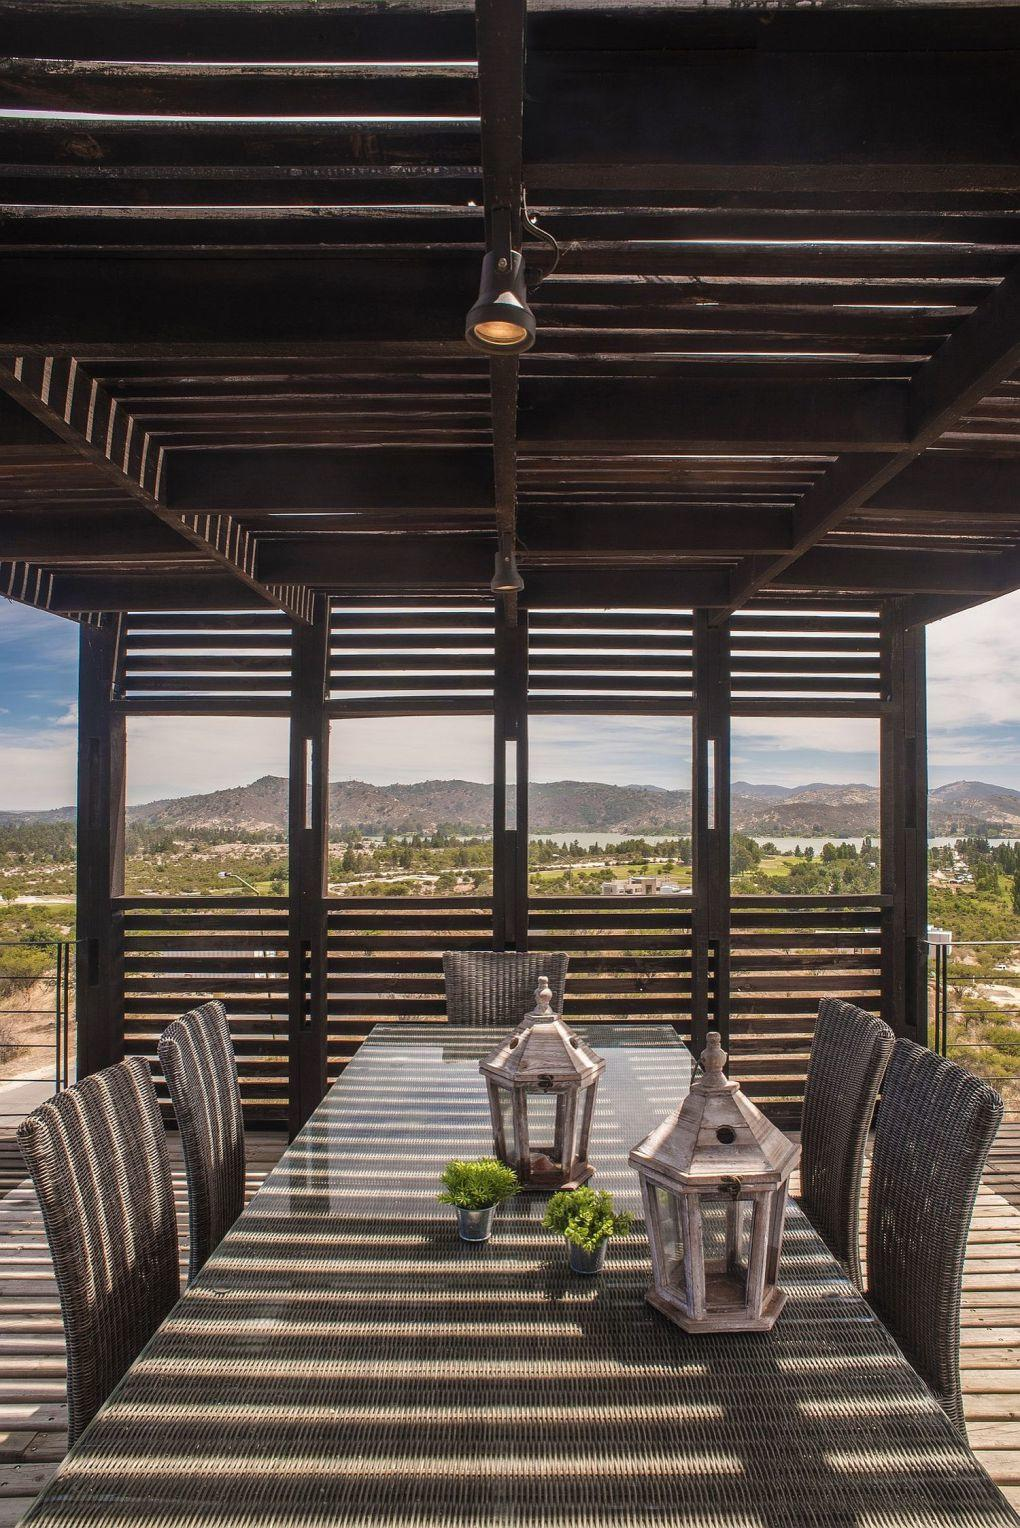 Ahşap Ev | Wooden slats offer shade for the outdoor dining space 1